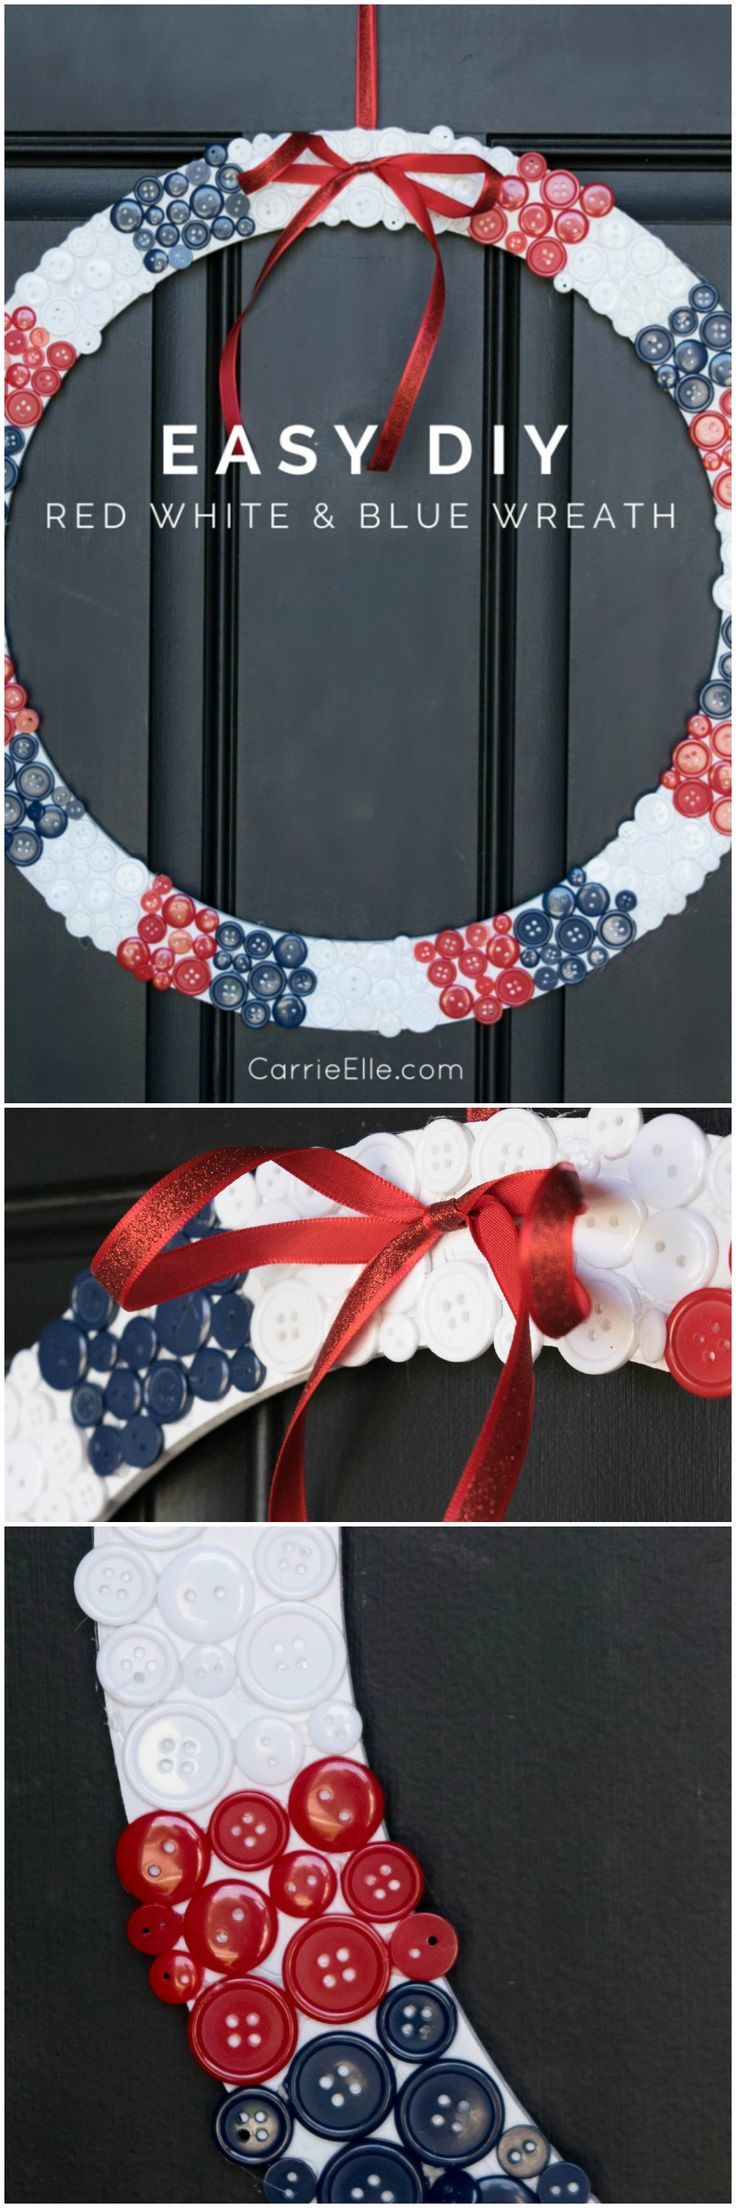 290 best CELEBRATE: 4th of July images on Pinterest | July 4th ...